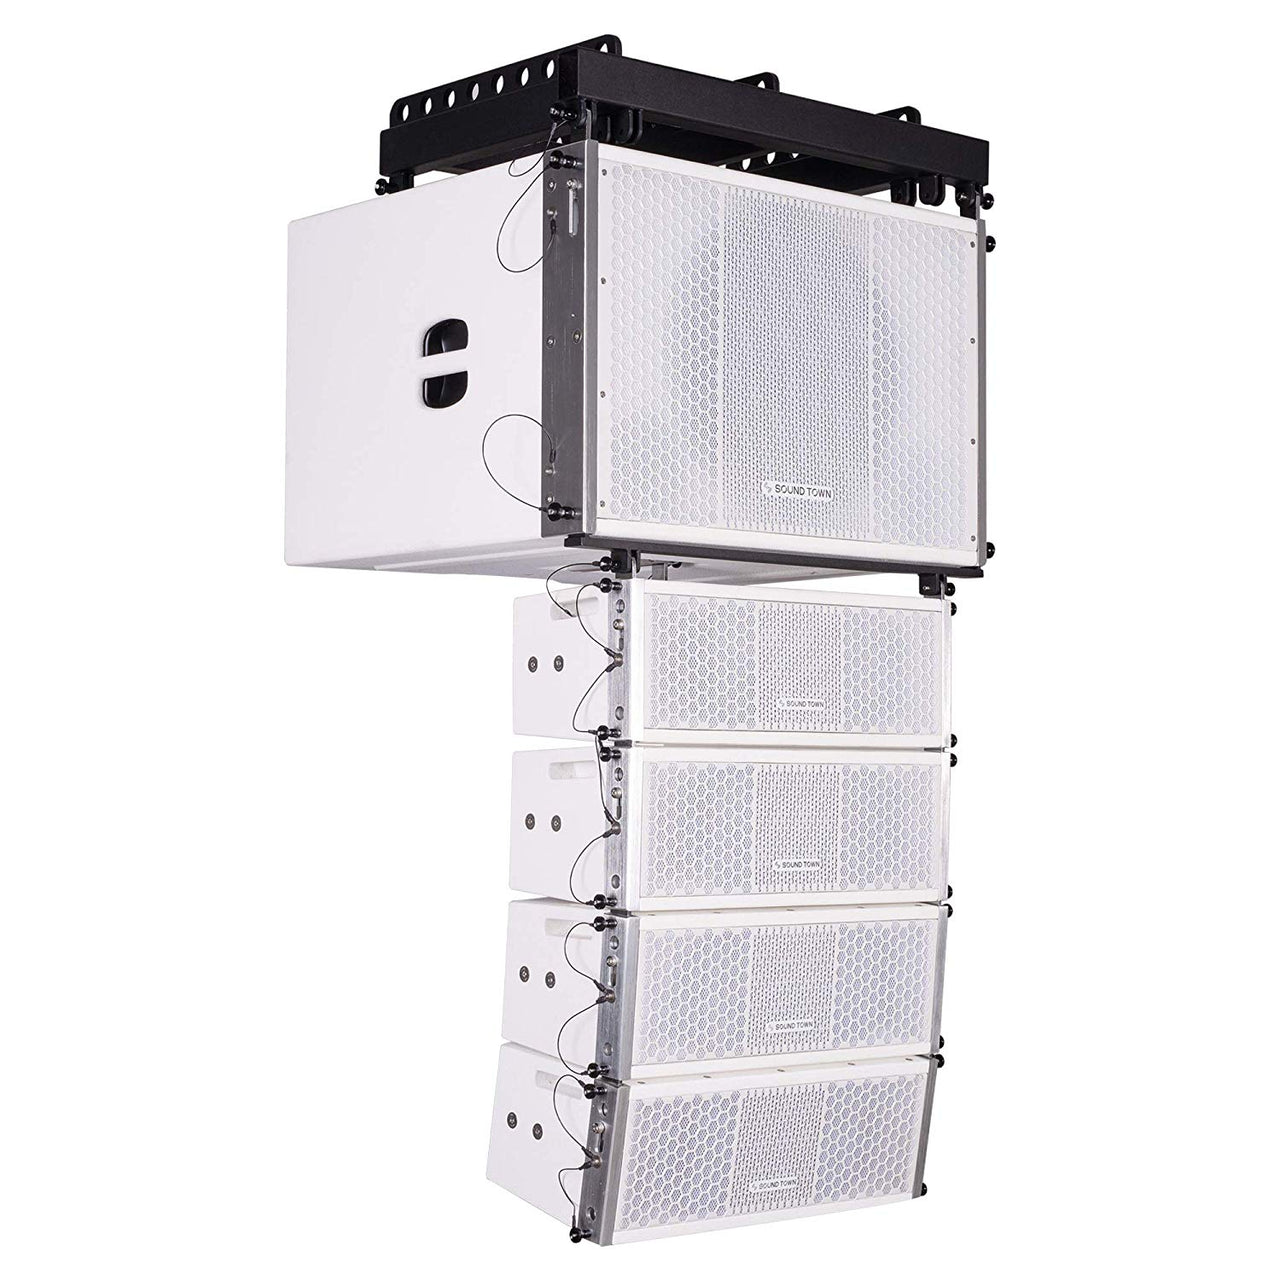 ZETHUS Series Line Array Speaker System with One 15-inch Powered Line Array Subwoofer, Four Compact 2 X 5-inch Line Array Speakers, White (ZETHUS-115SWPW205WV2X4)